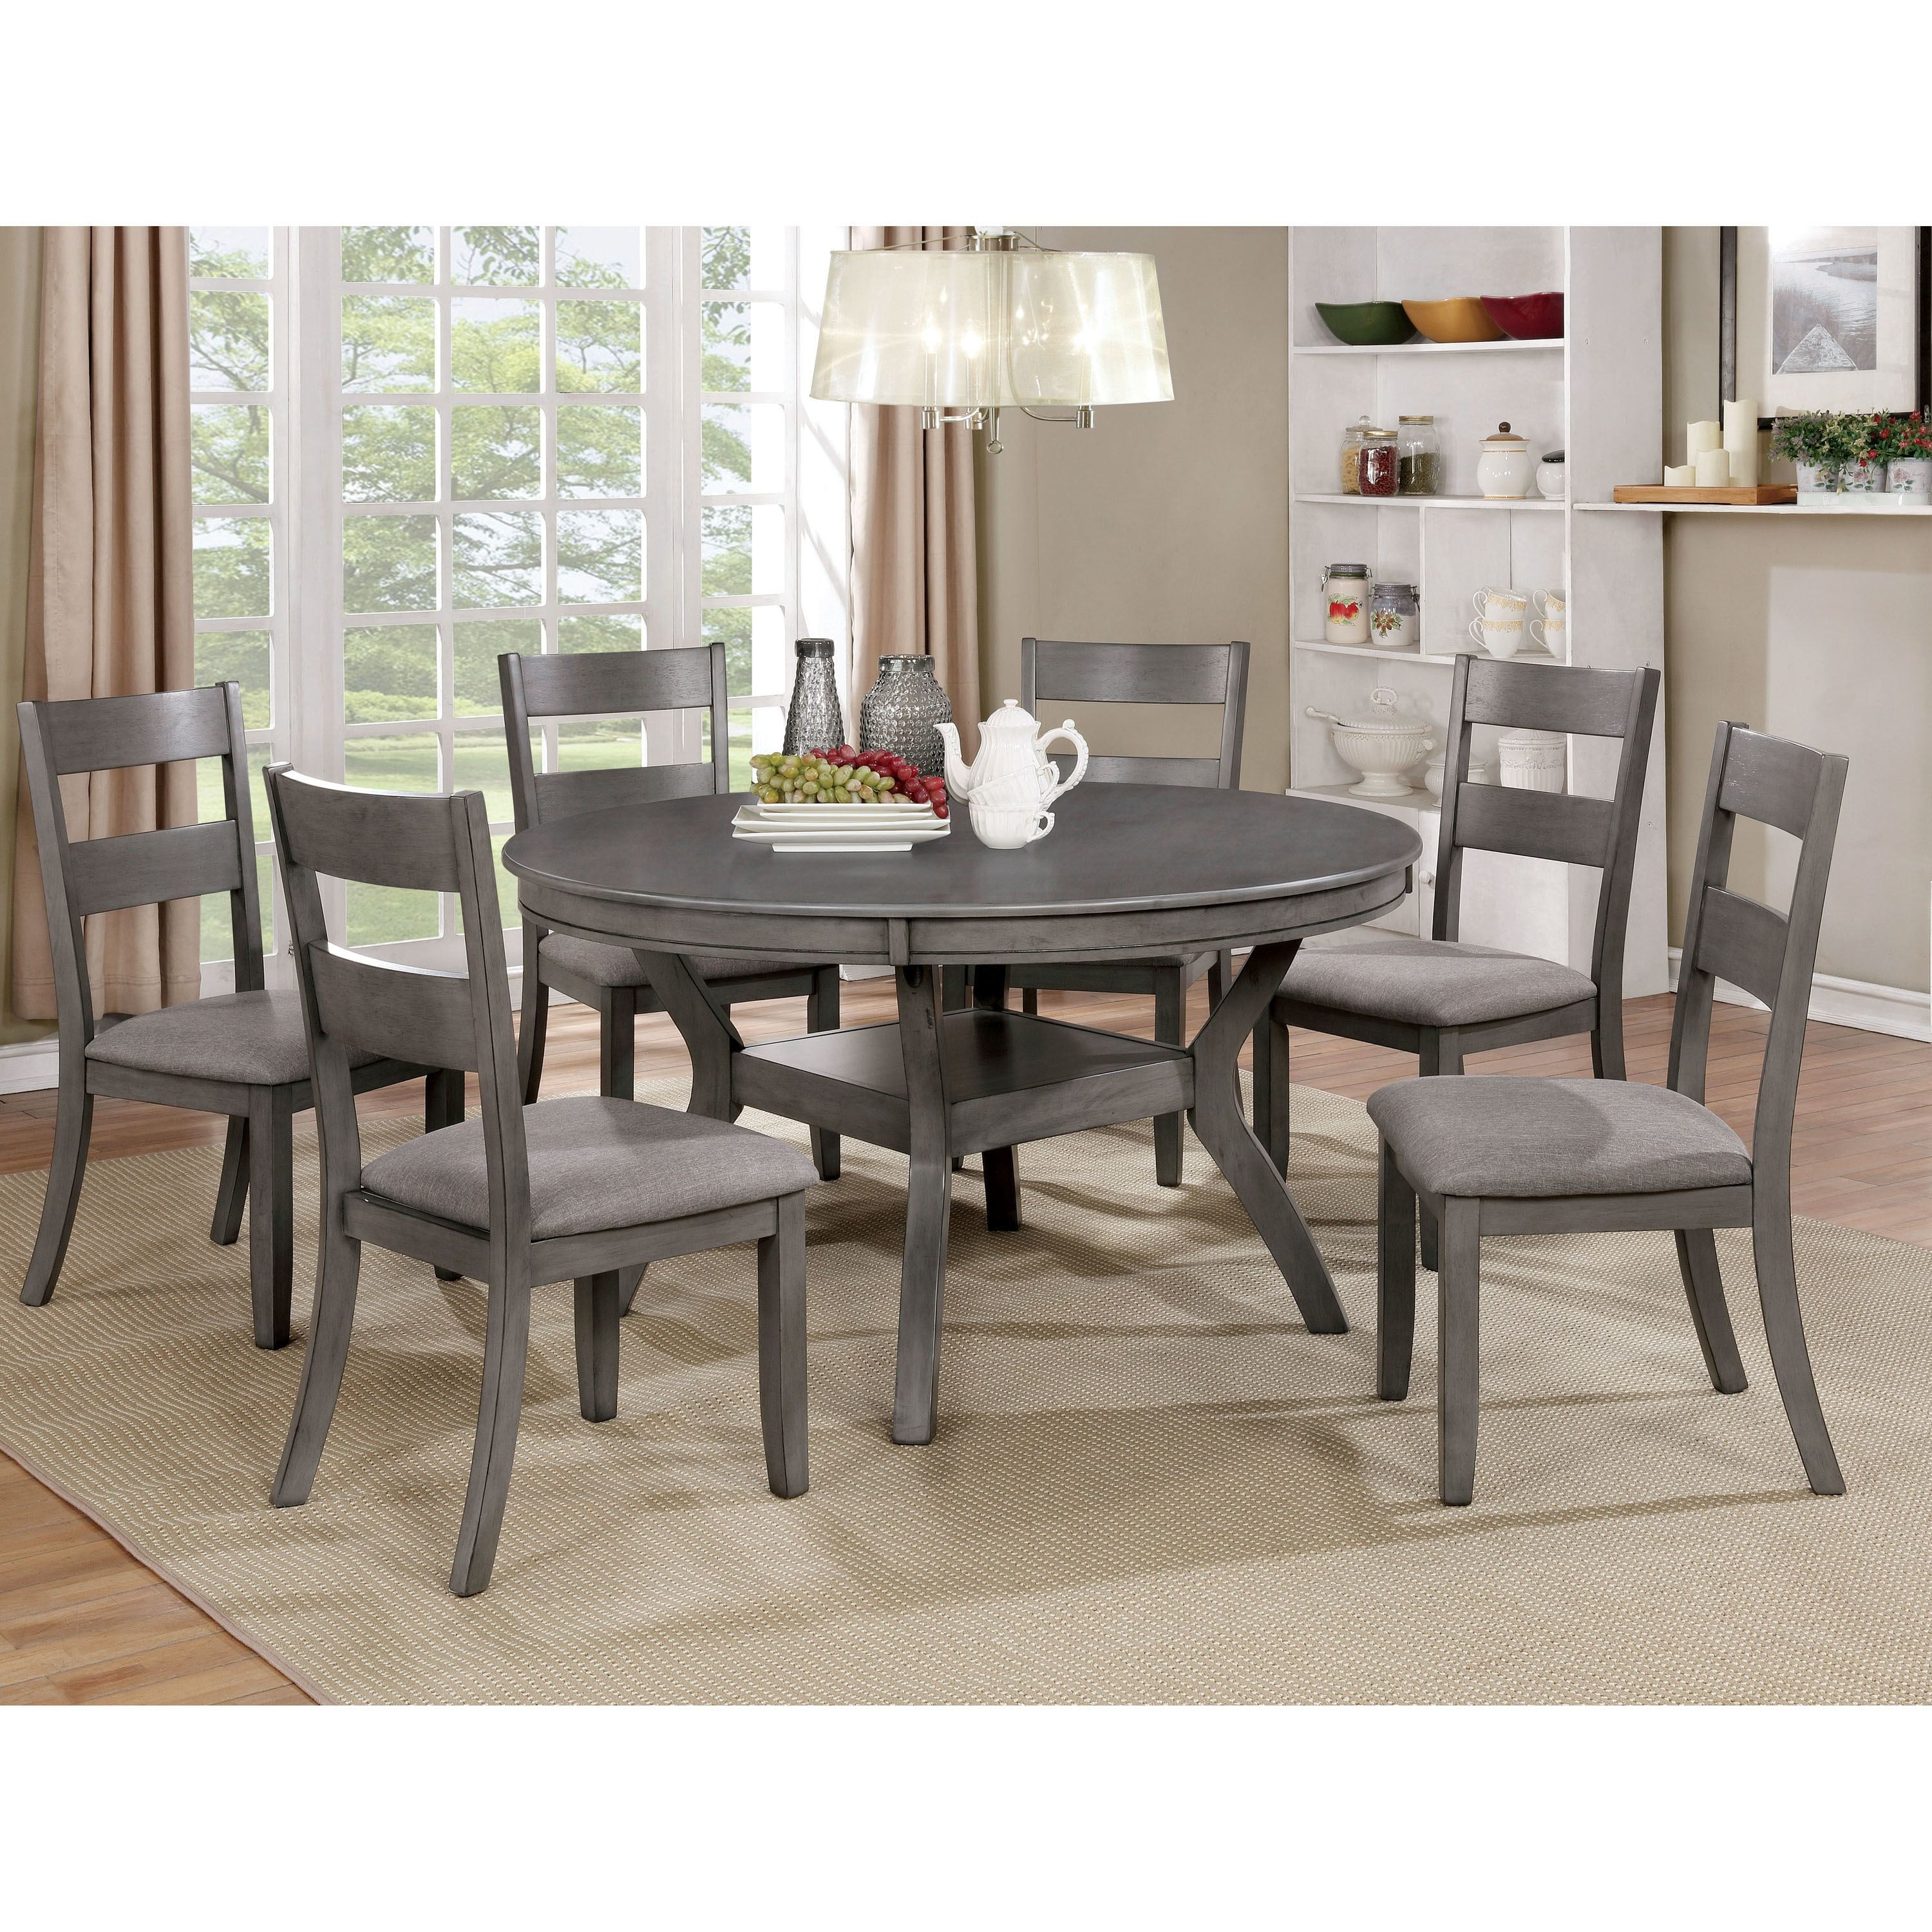 Relia Transitional 54 Inch Round Dining Table By Foa